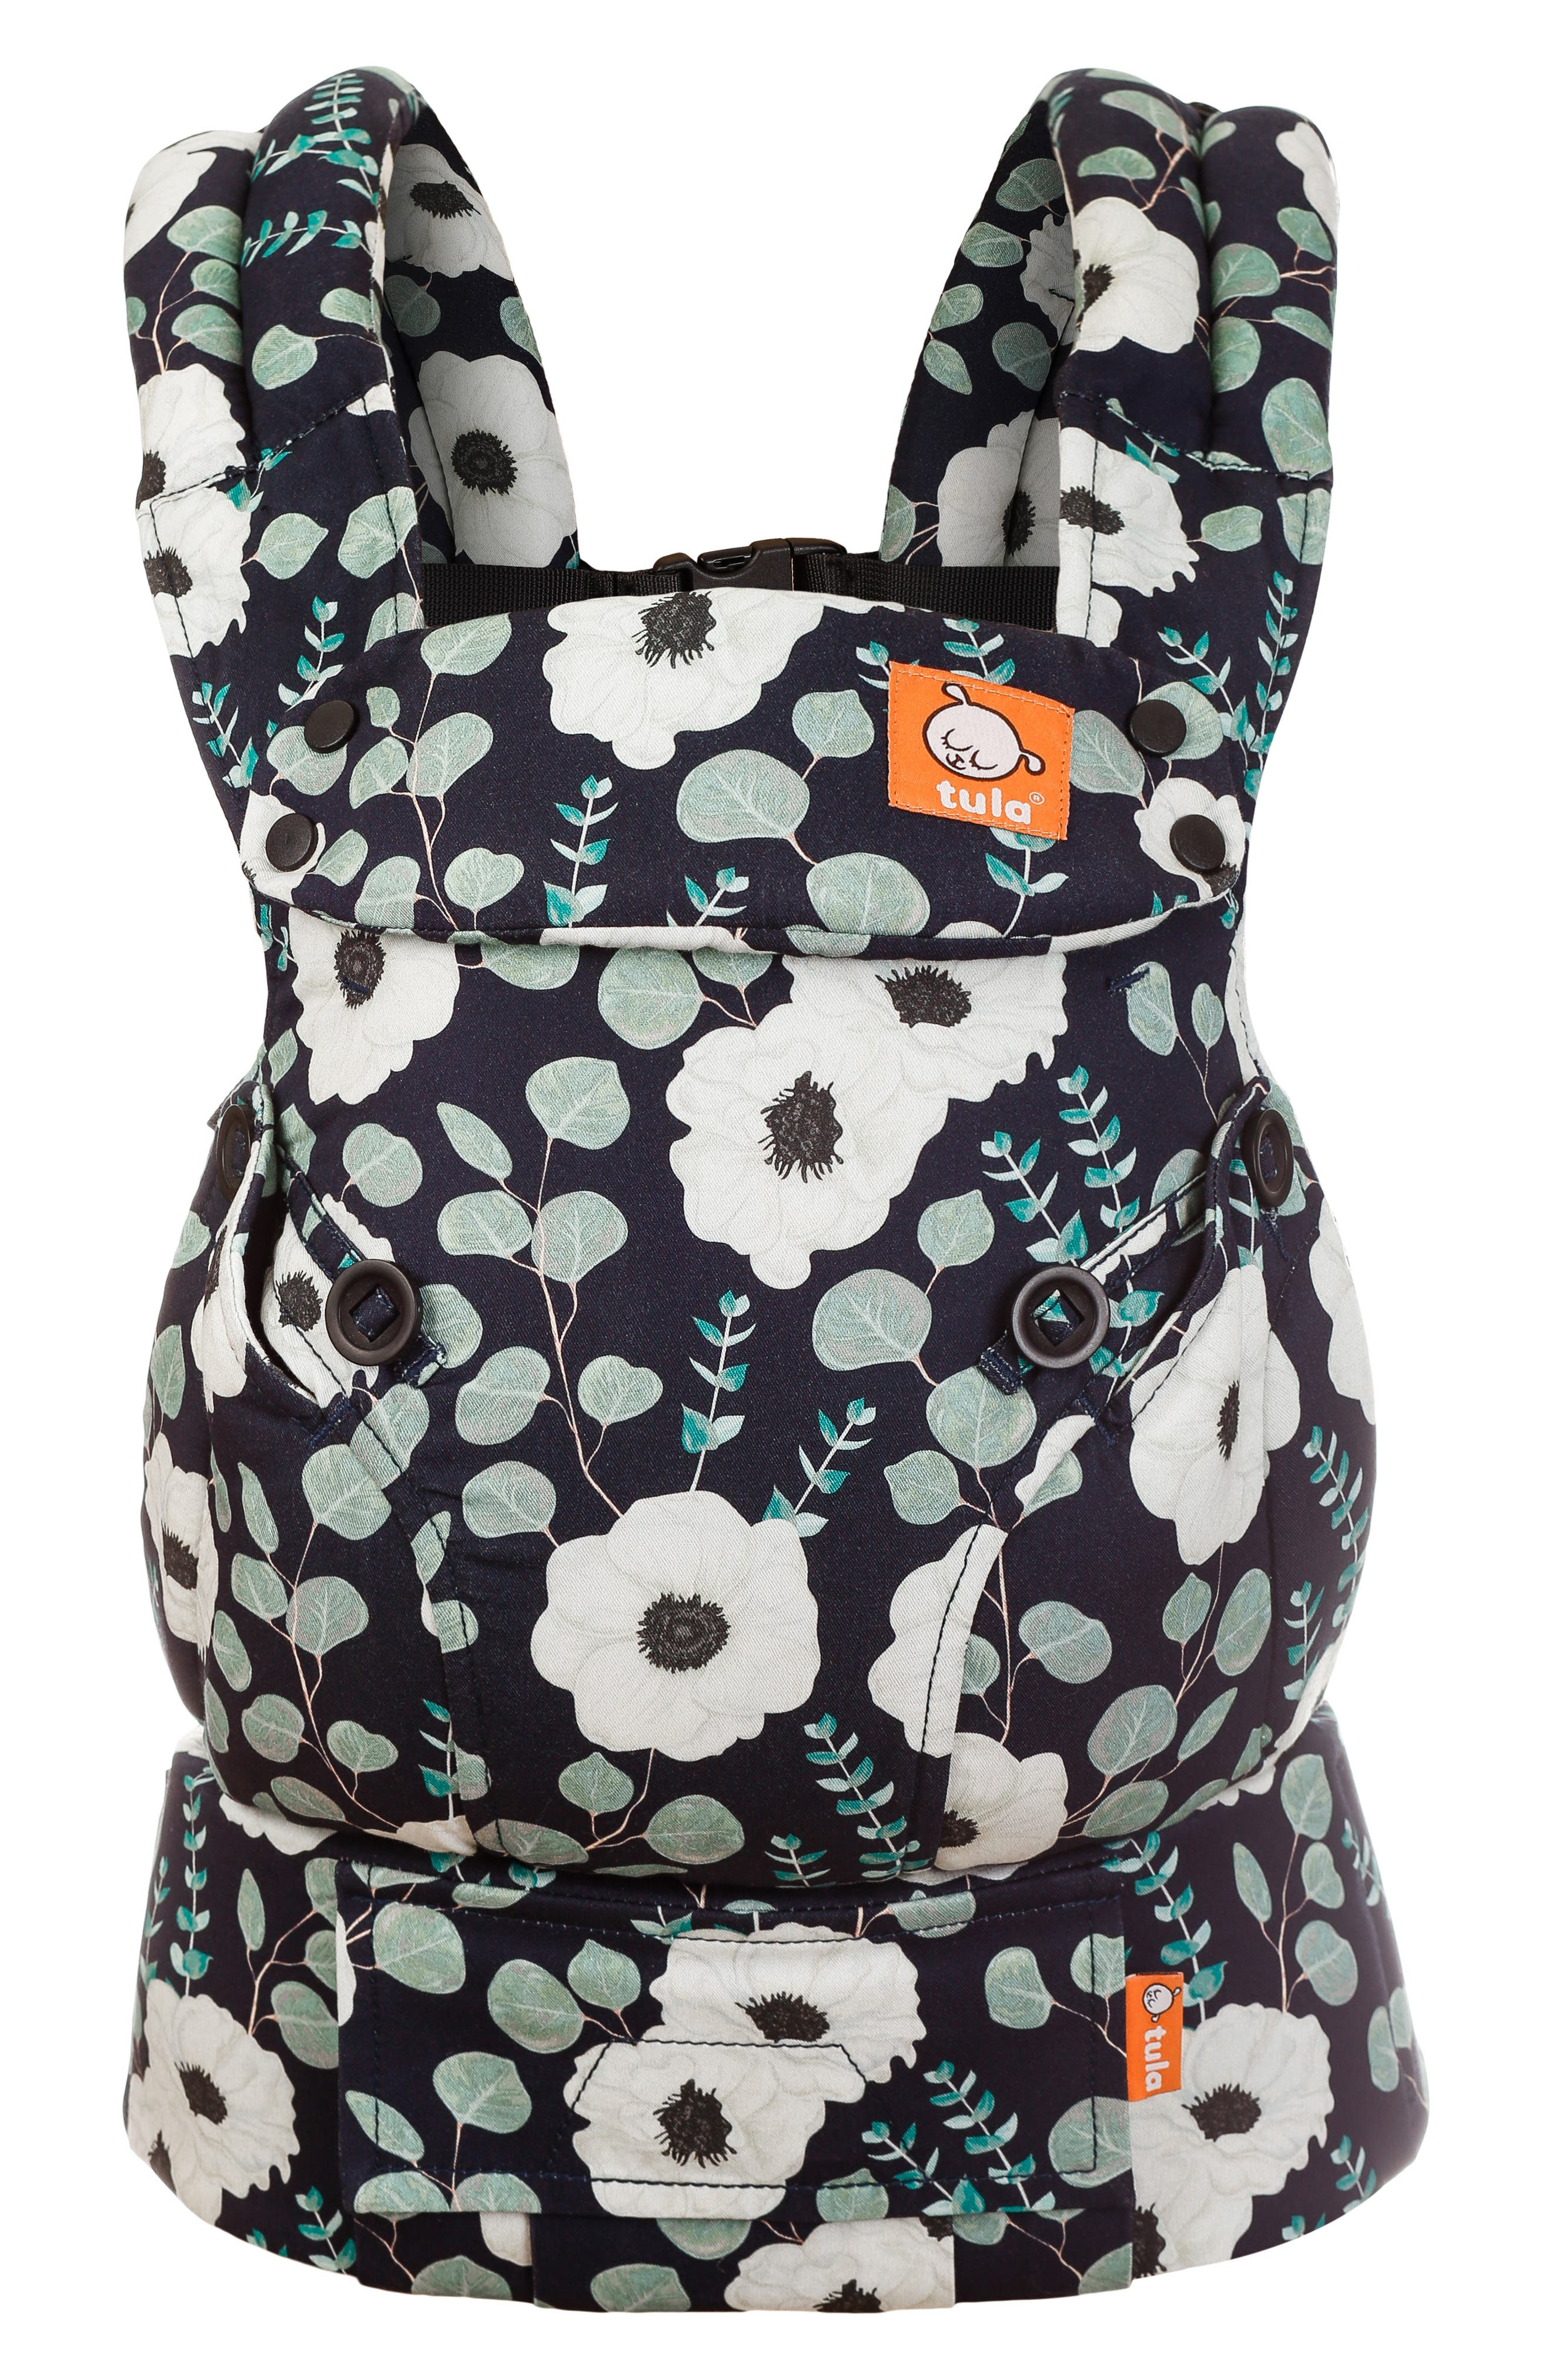 BABY TULA, Explore Front/Back Baby Carrier, Main thumbnail 1, color, SONNET